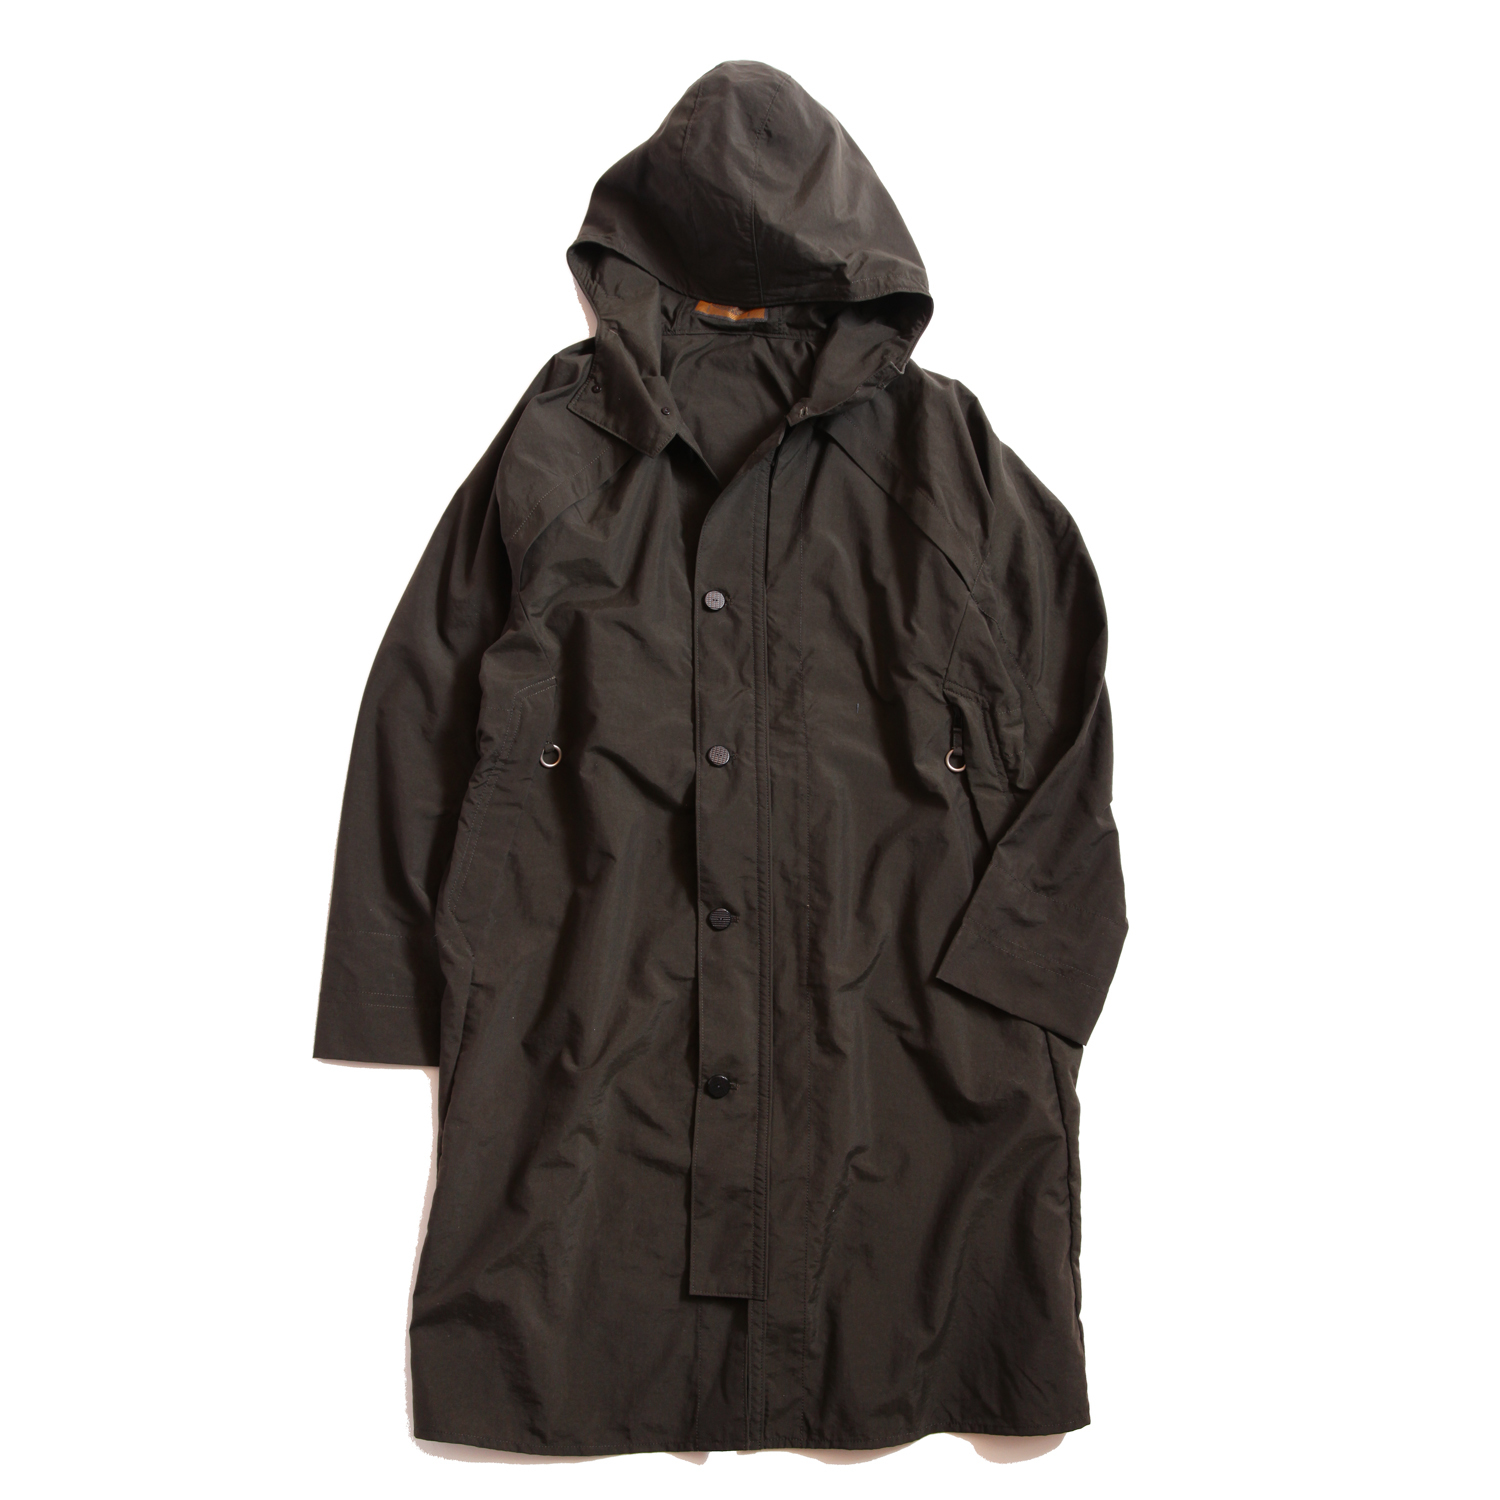 Postalco/Four Vent Long Rain Jacket/Mountain Green